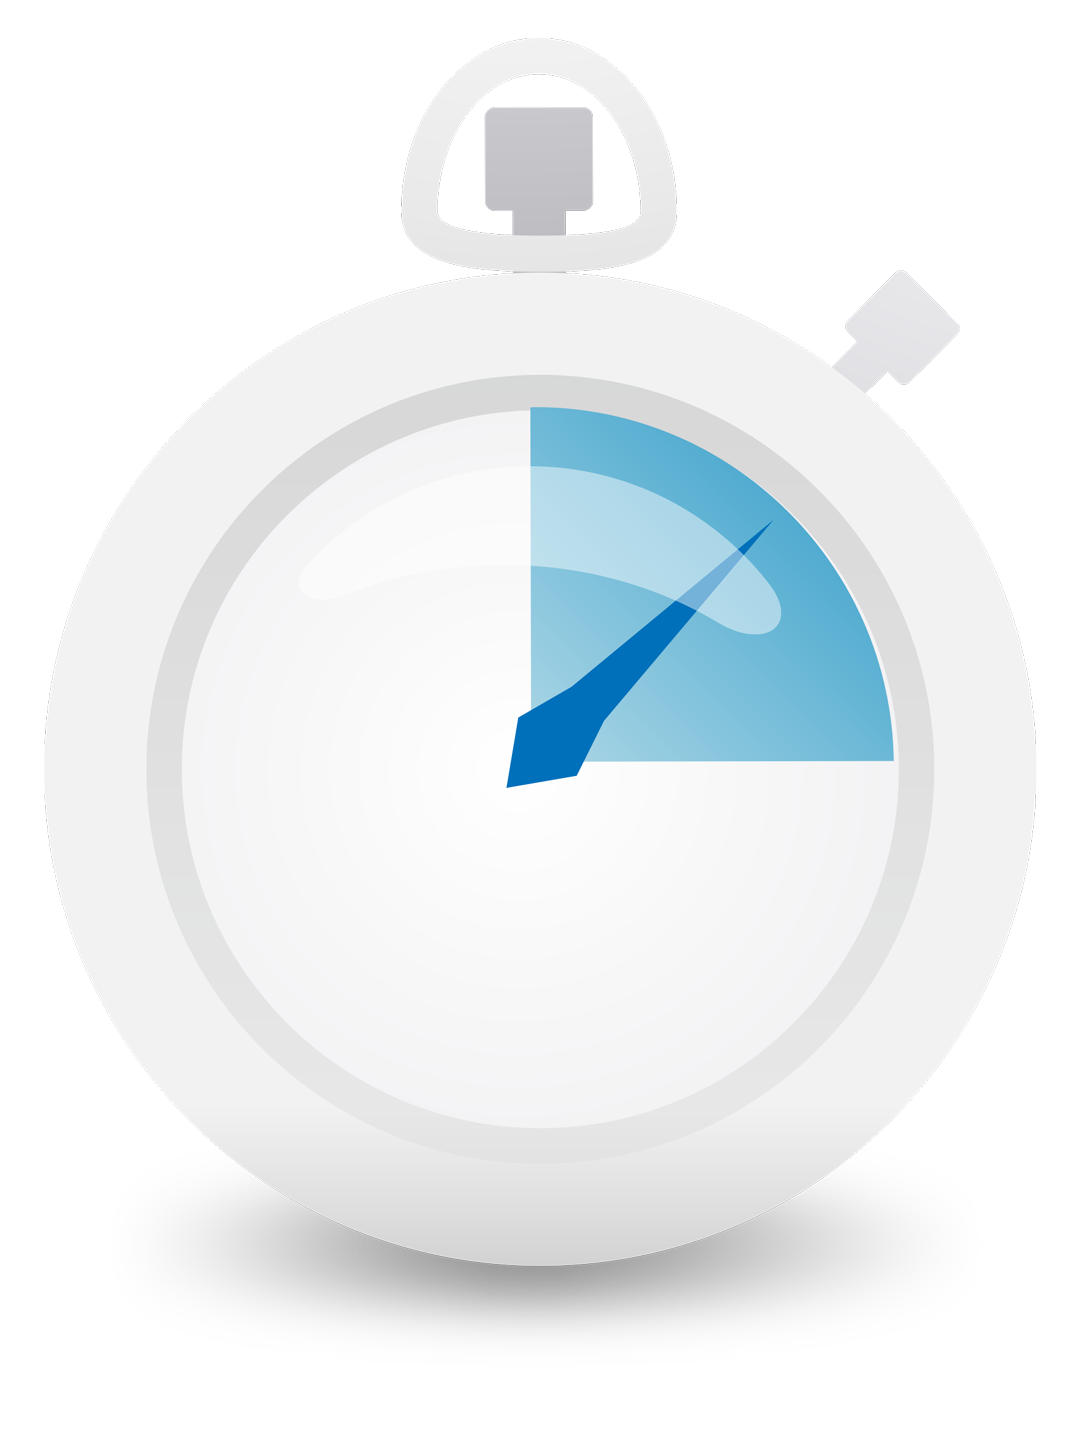 Stopwatch clipart track. Here s how pretty